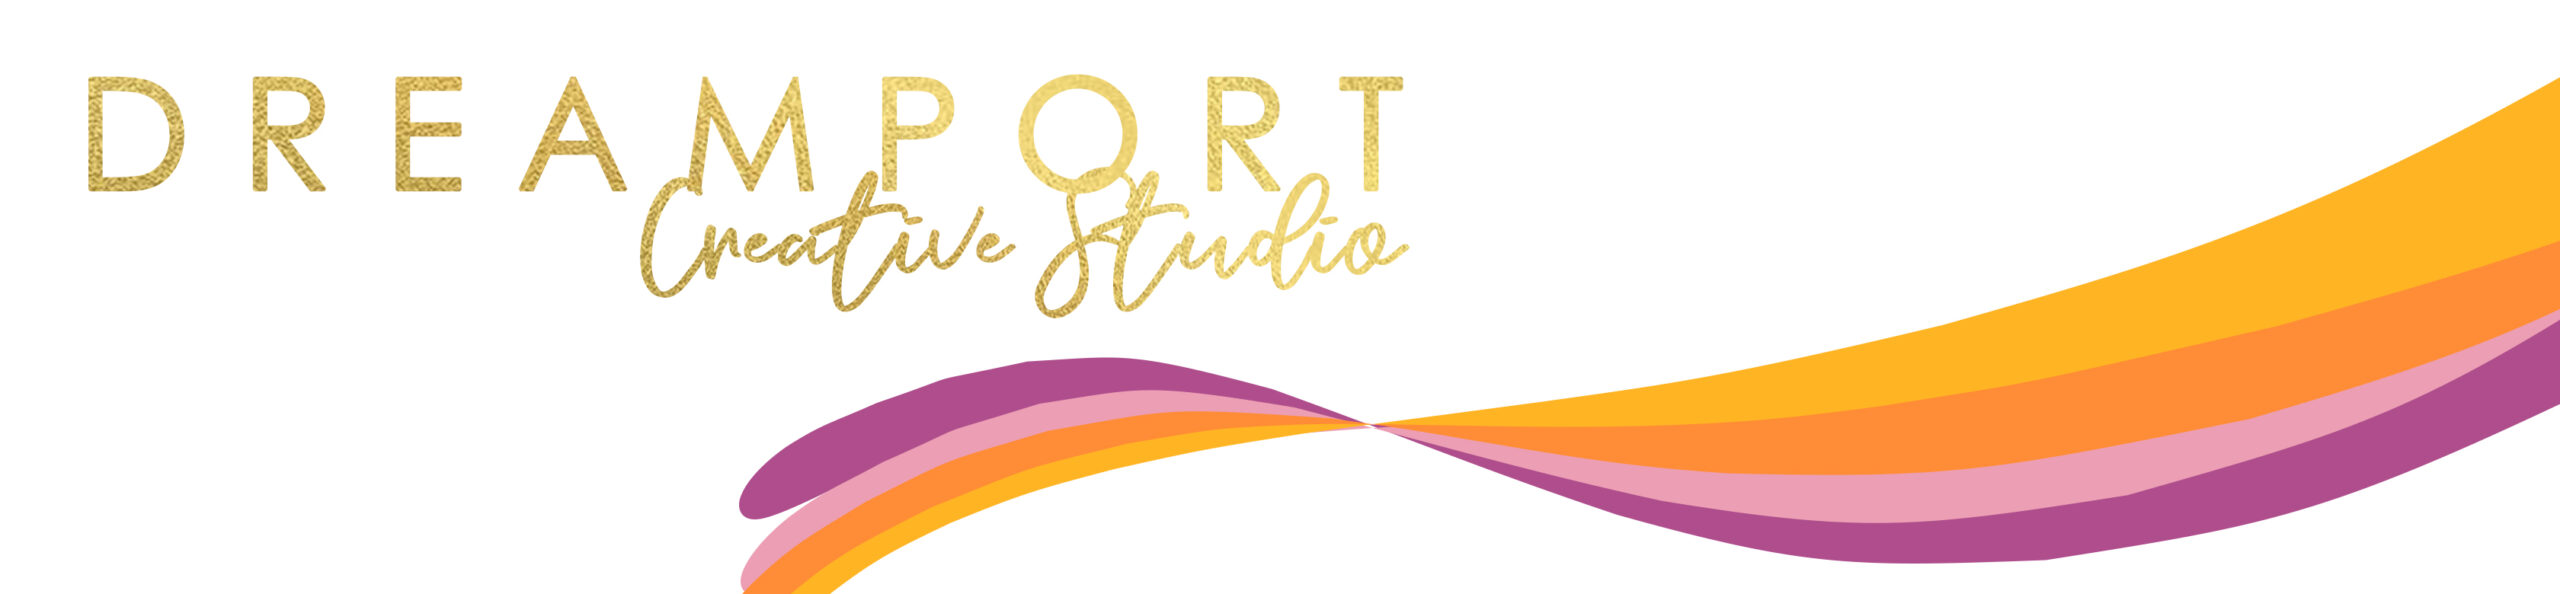 DREAMPORT Creative Studio